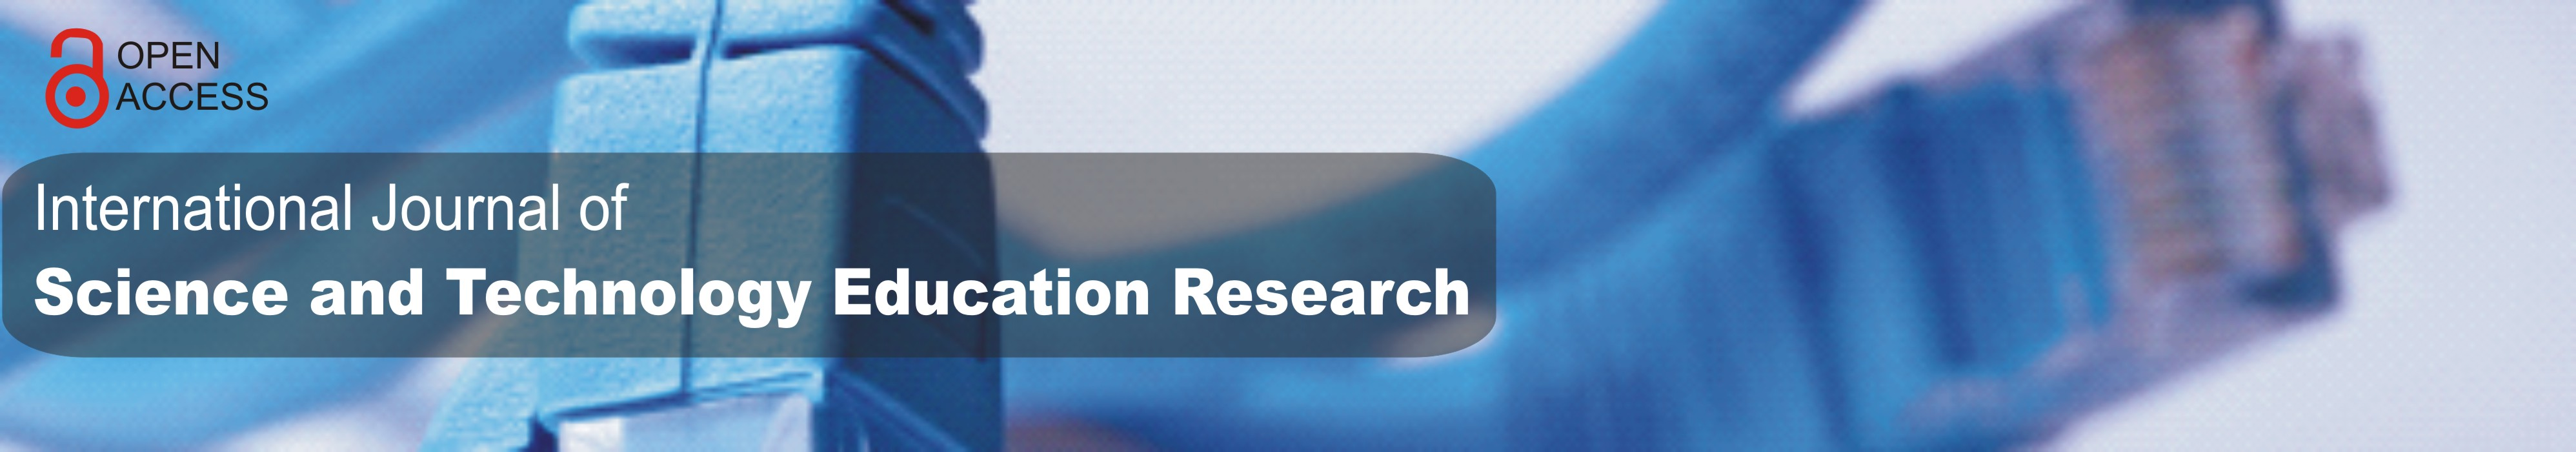 International Journal of Science and Technology Education Research